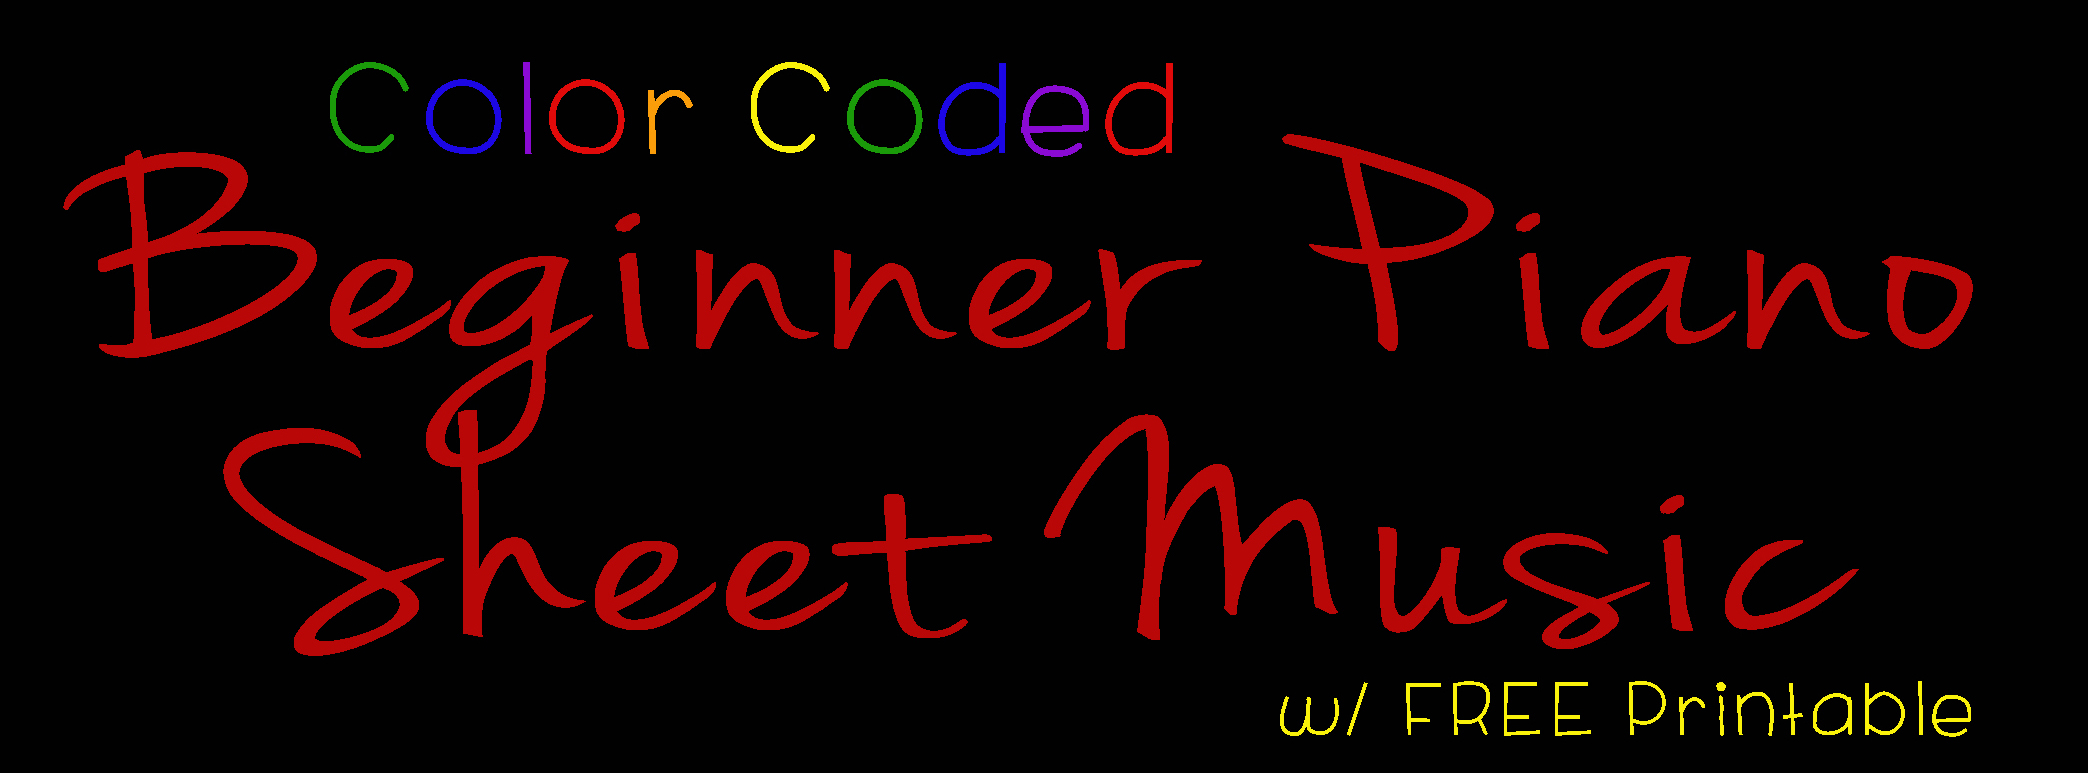 Color Coded Beginner Piano Sheet Music Banner - projectsinparenting.jpg